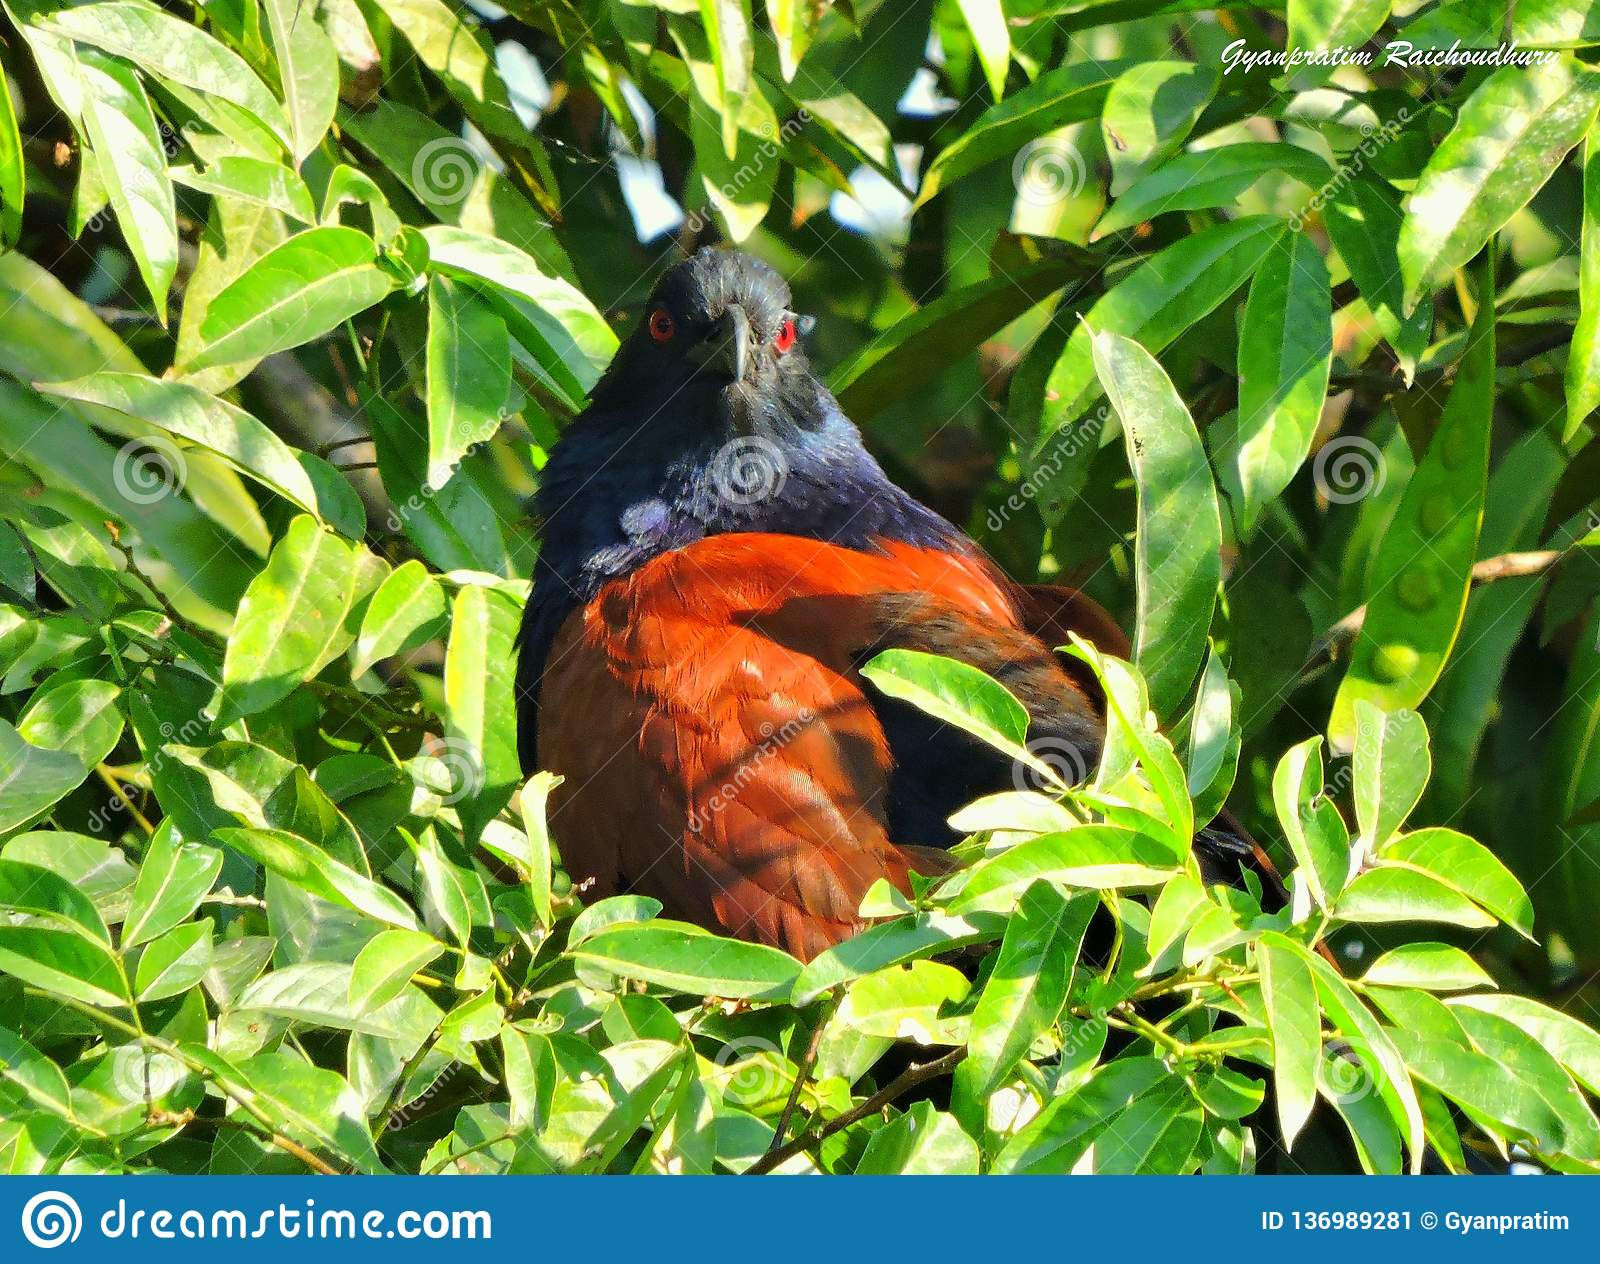 TheÂ更加伟大coucal